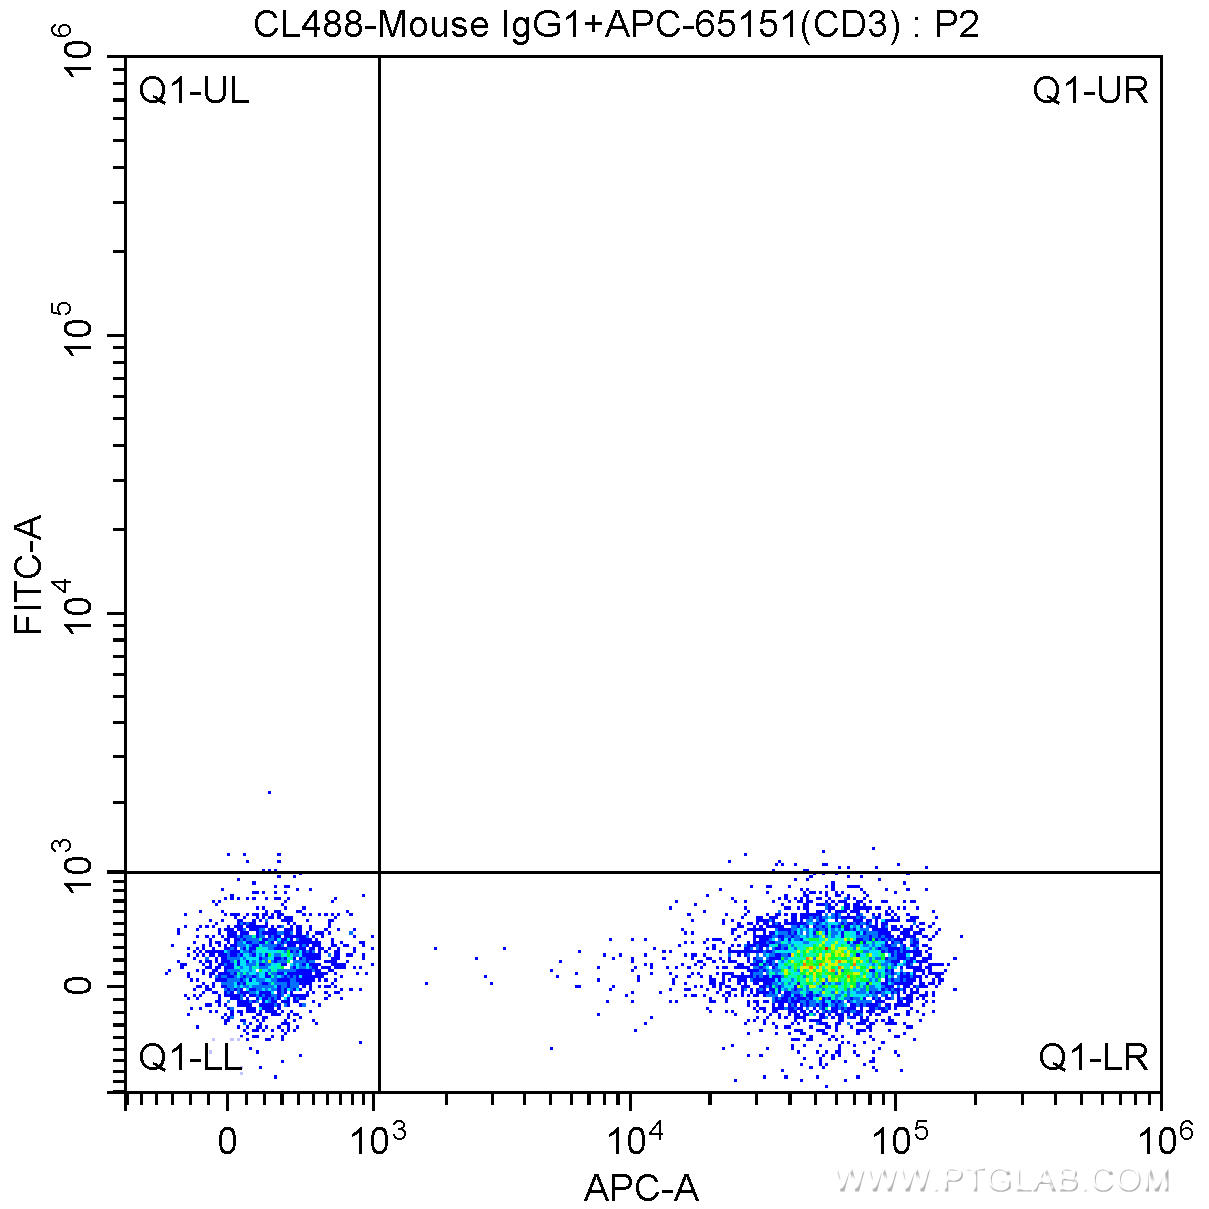 1X10^6 human peripheral blood lymphocytes were surface stained with APC-Anti-Human CD3 (APC-65151,?Clone: UCHT1) and CoraLite®488-conjugated Mouse IgG1 isotype control. Cells were not fixed.